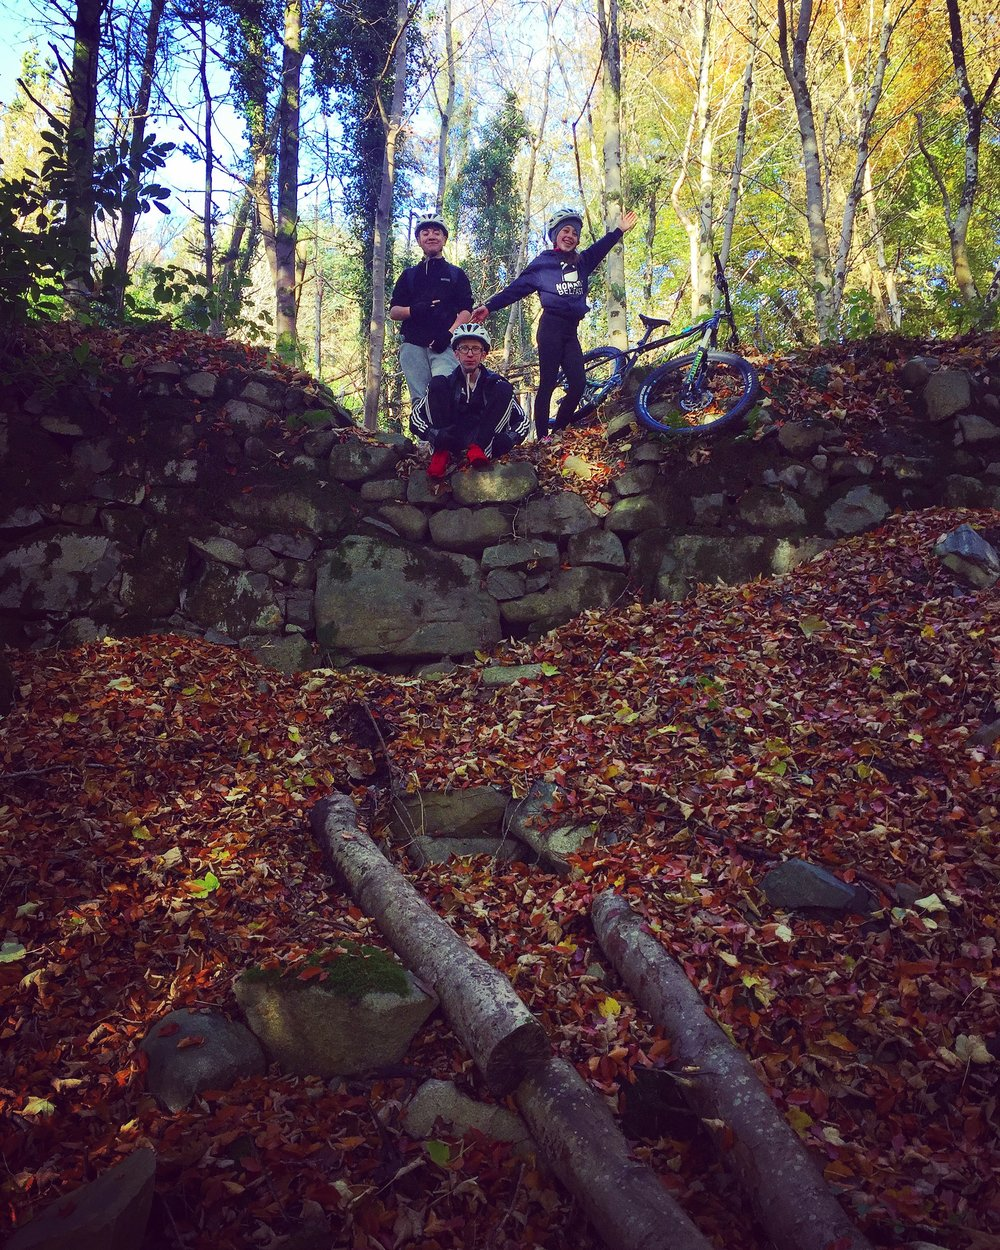 castlewellan_forest_park_mountainbike_kayak_maze_niexplorer_ni_explorer_northern_ireland.jpg